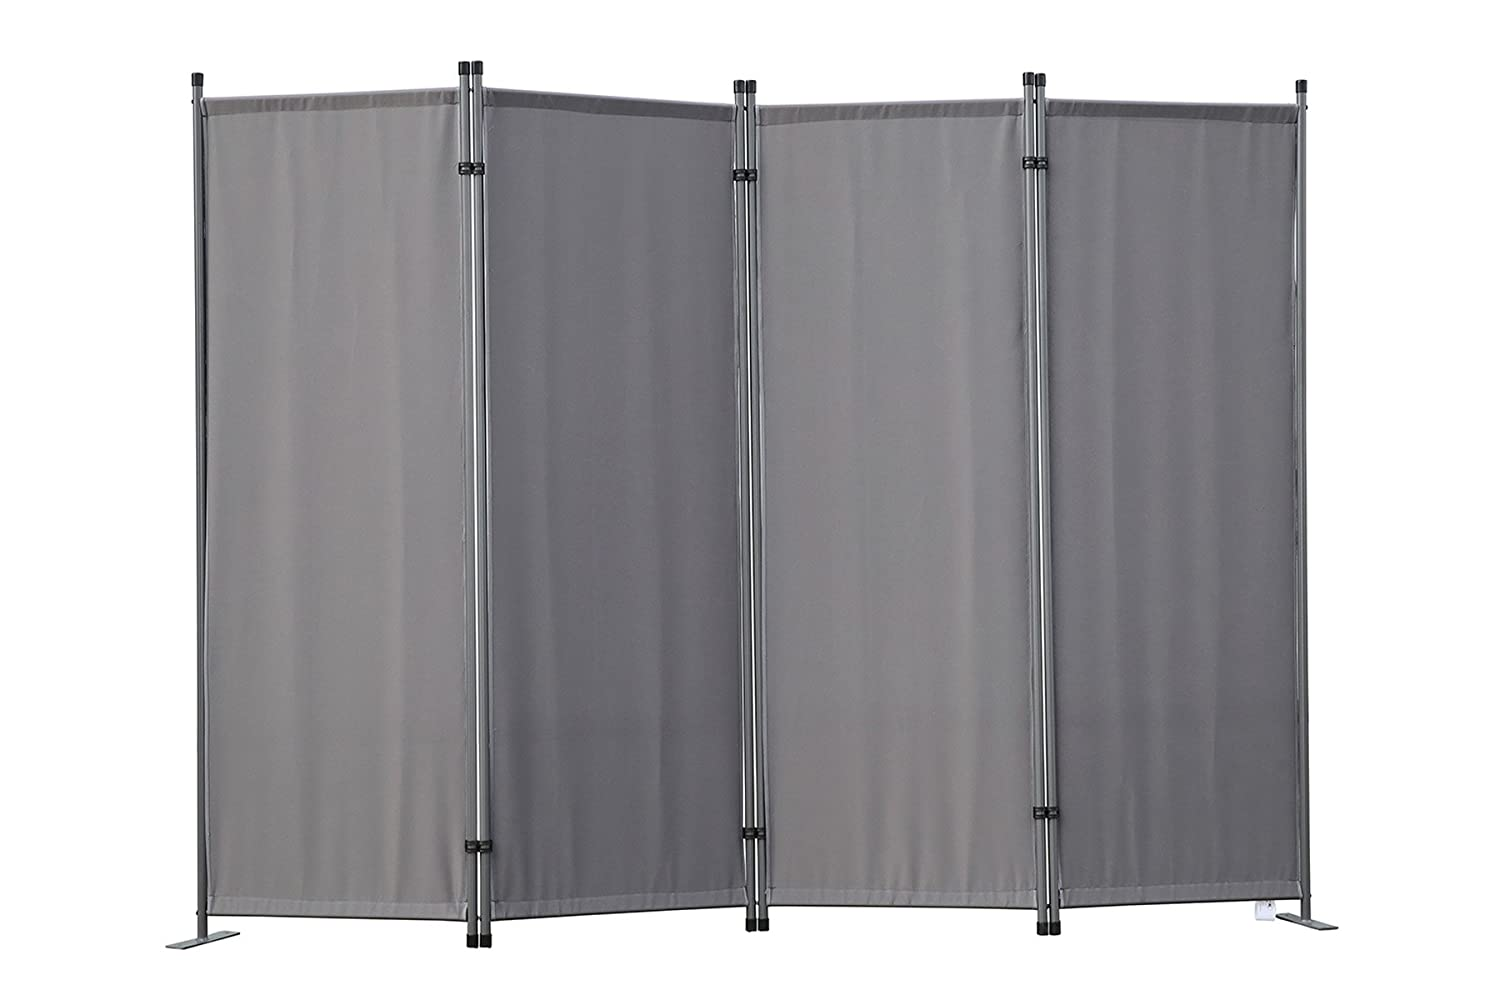 Angel Living Protective Screens Room Divider Screen Panel Folding Room Partition Wall Furniture Outdoor Screens for Patio Privacy (3-piece 169x165cm, Beige)